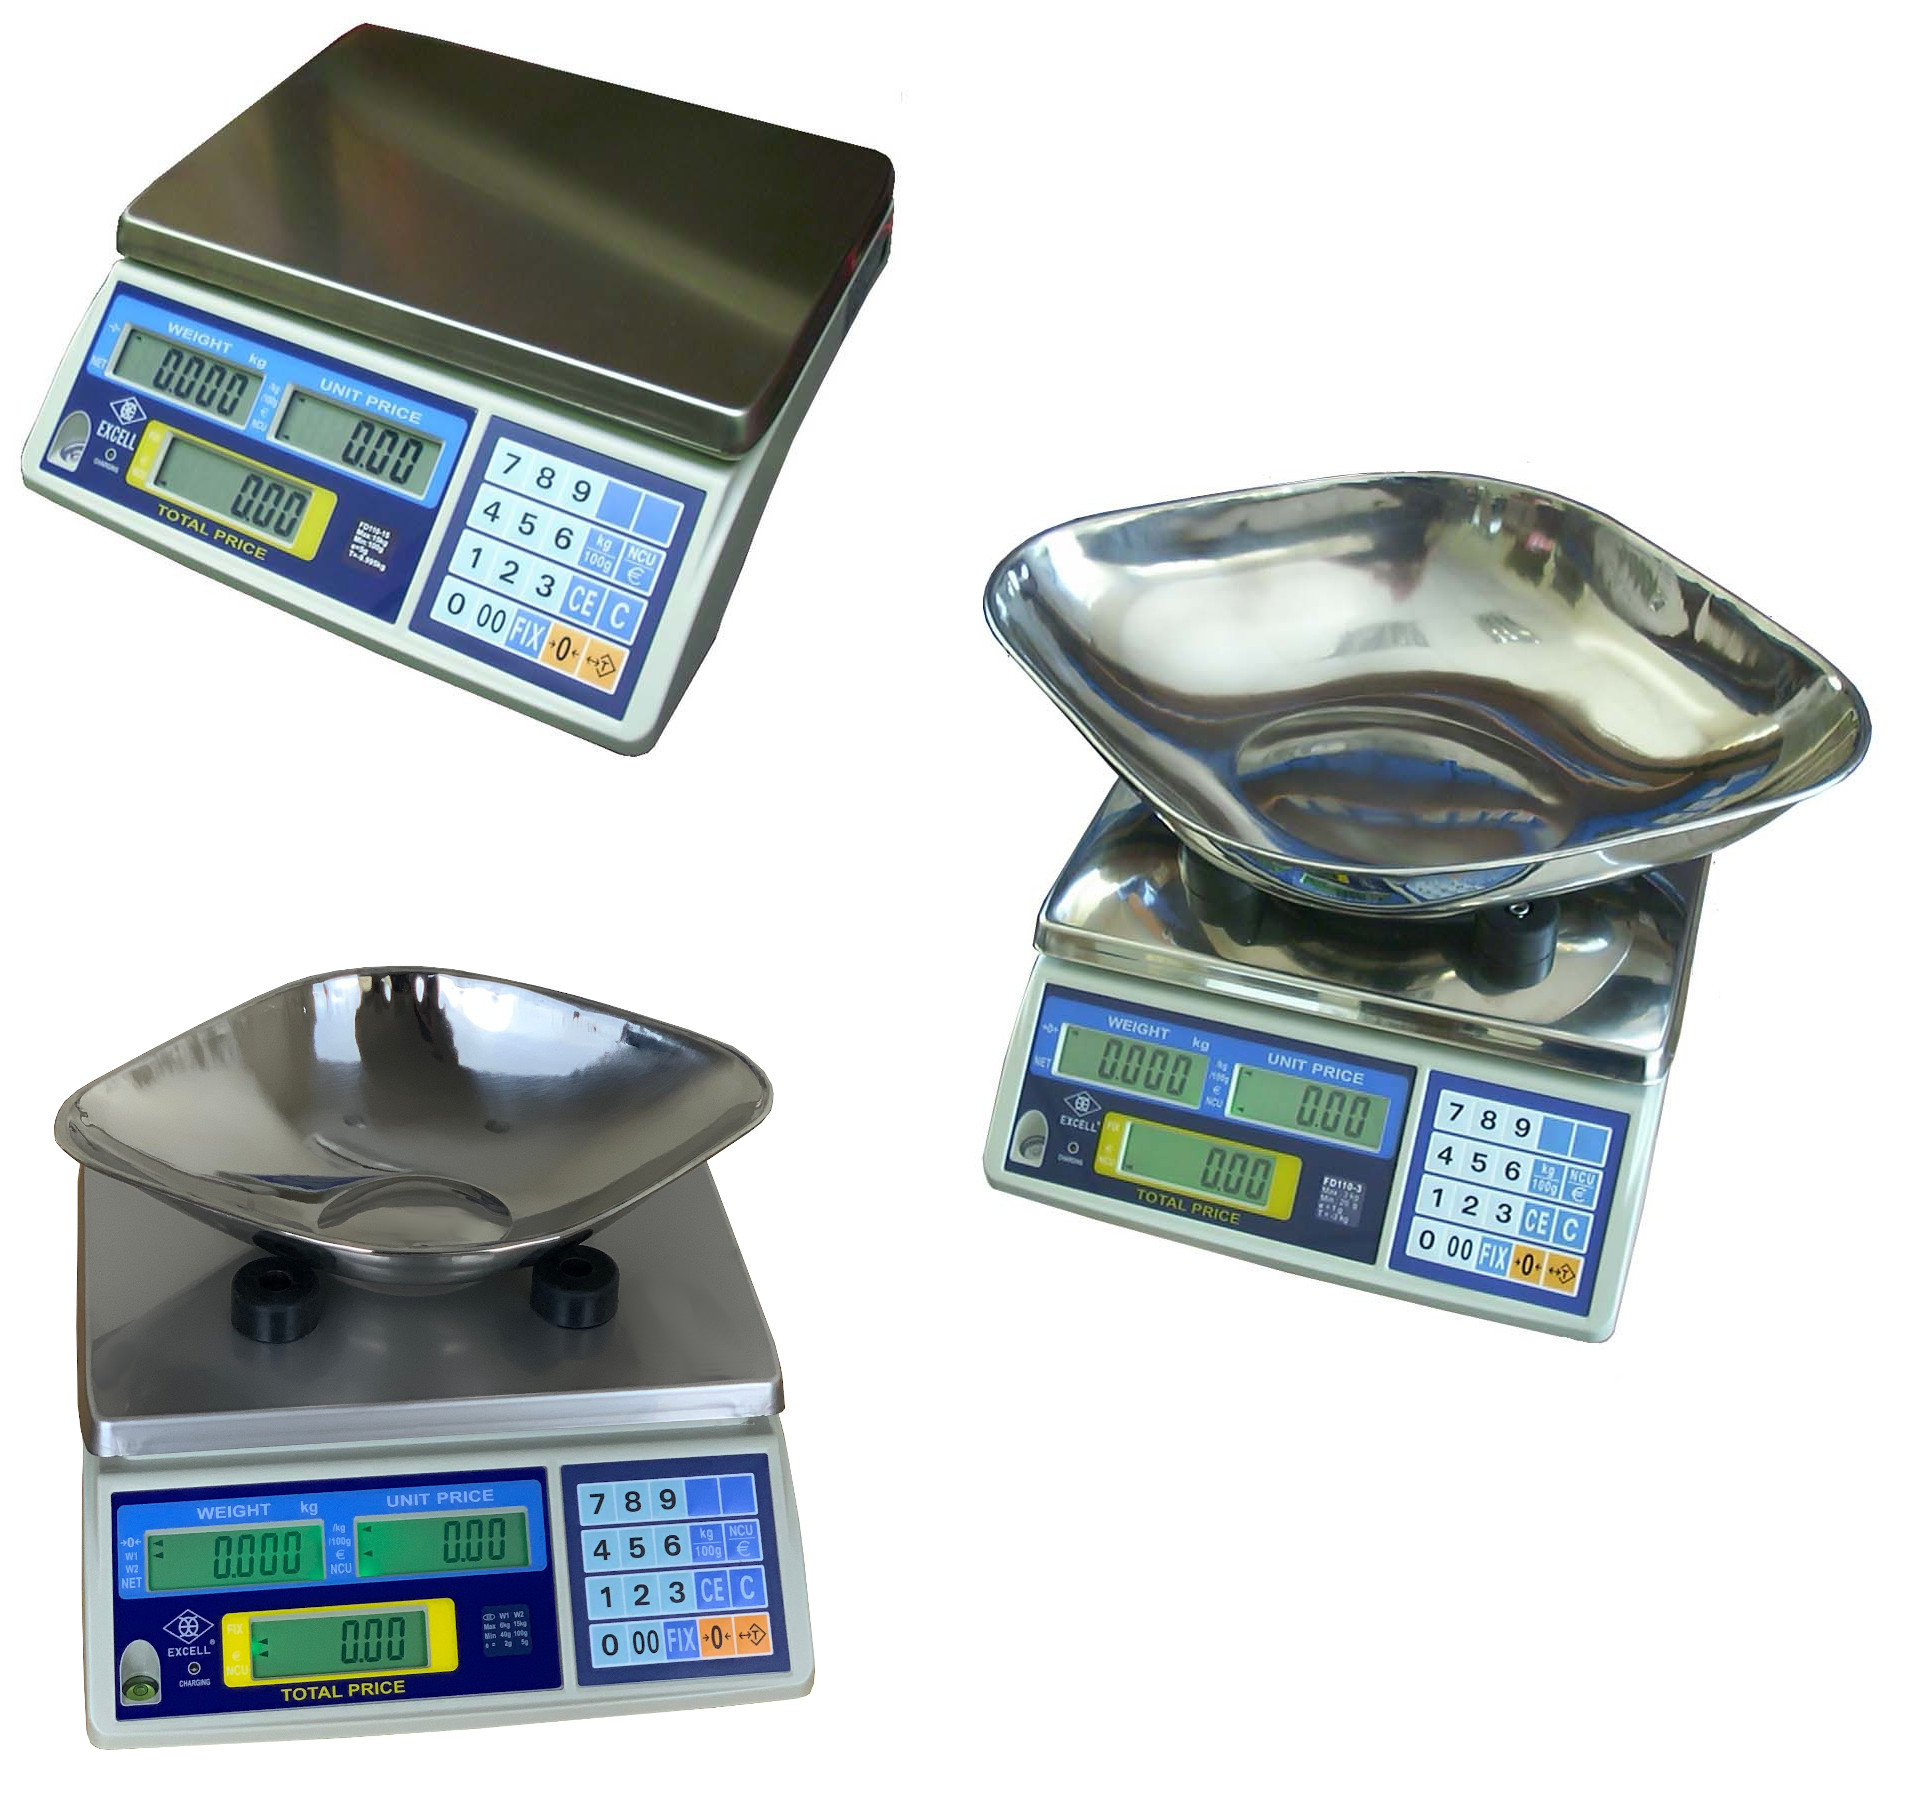 Shop Scales from weighingscales.com